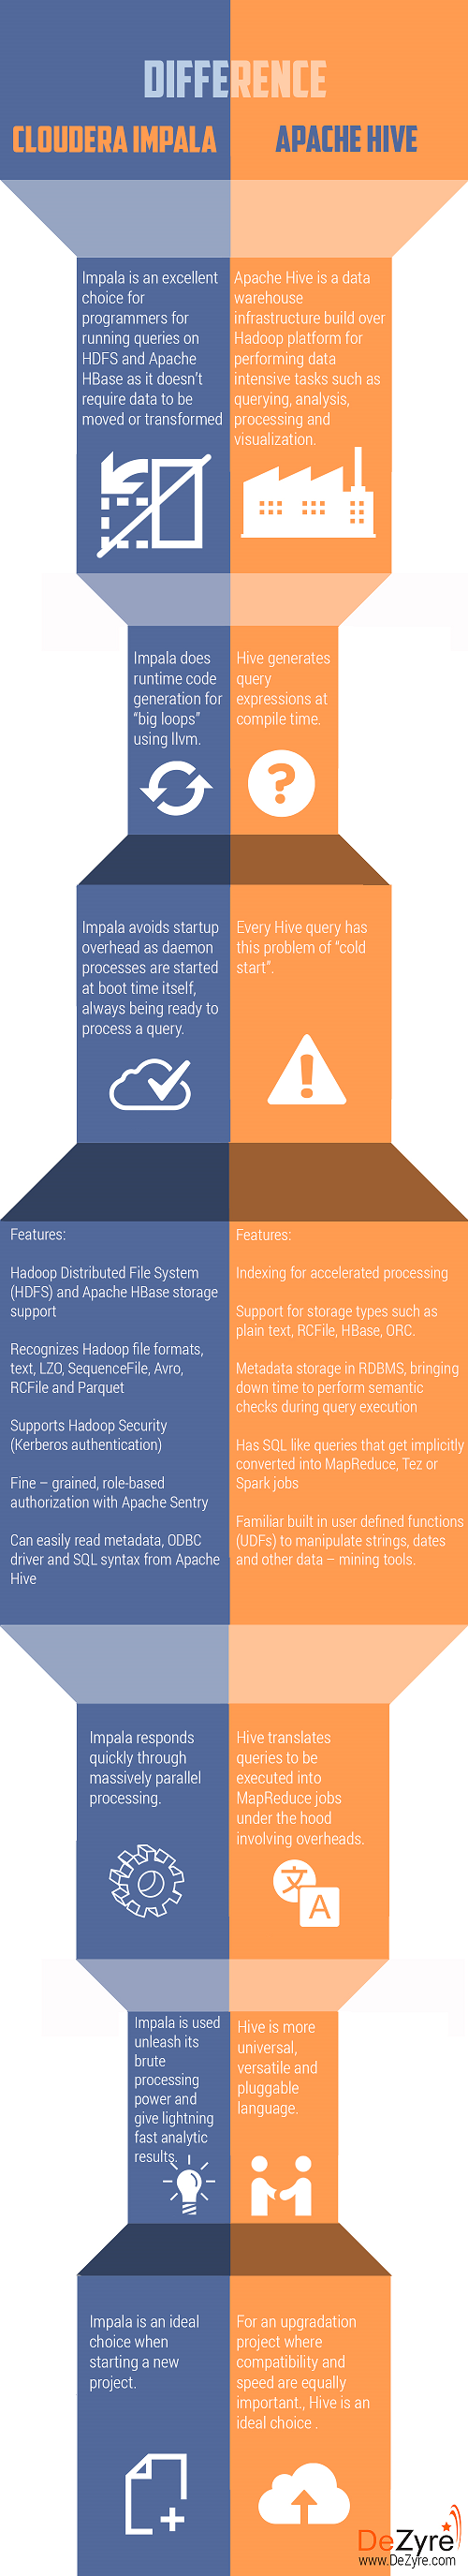 Impala vs Hive: Difference between Sql on Hadoop components